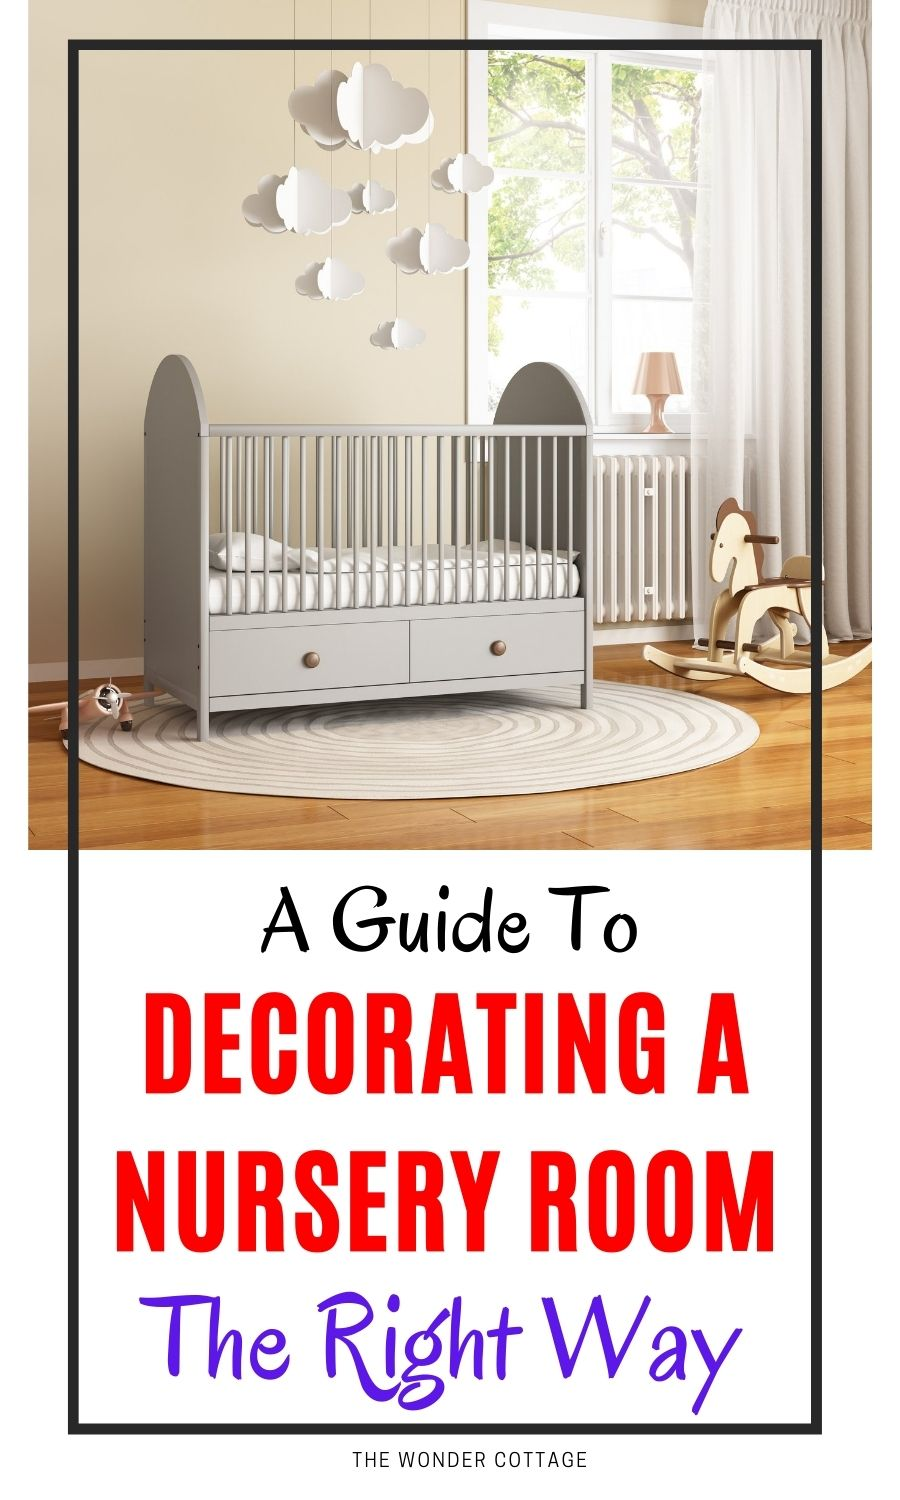 A Simple Guide To Decorating A Nursery Room In The Right Way